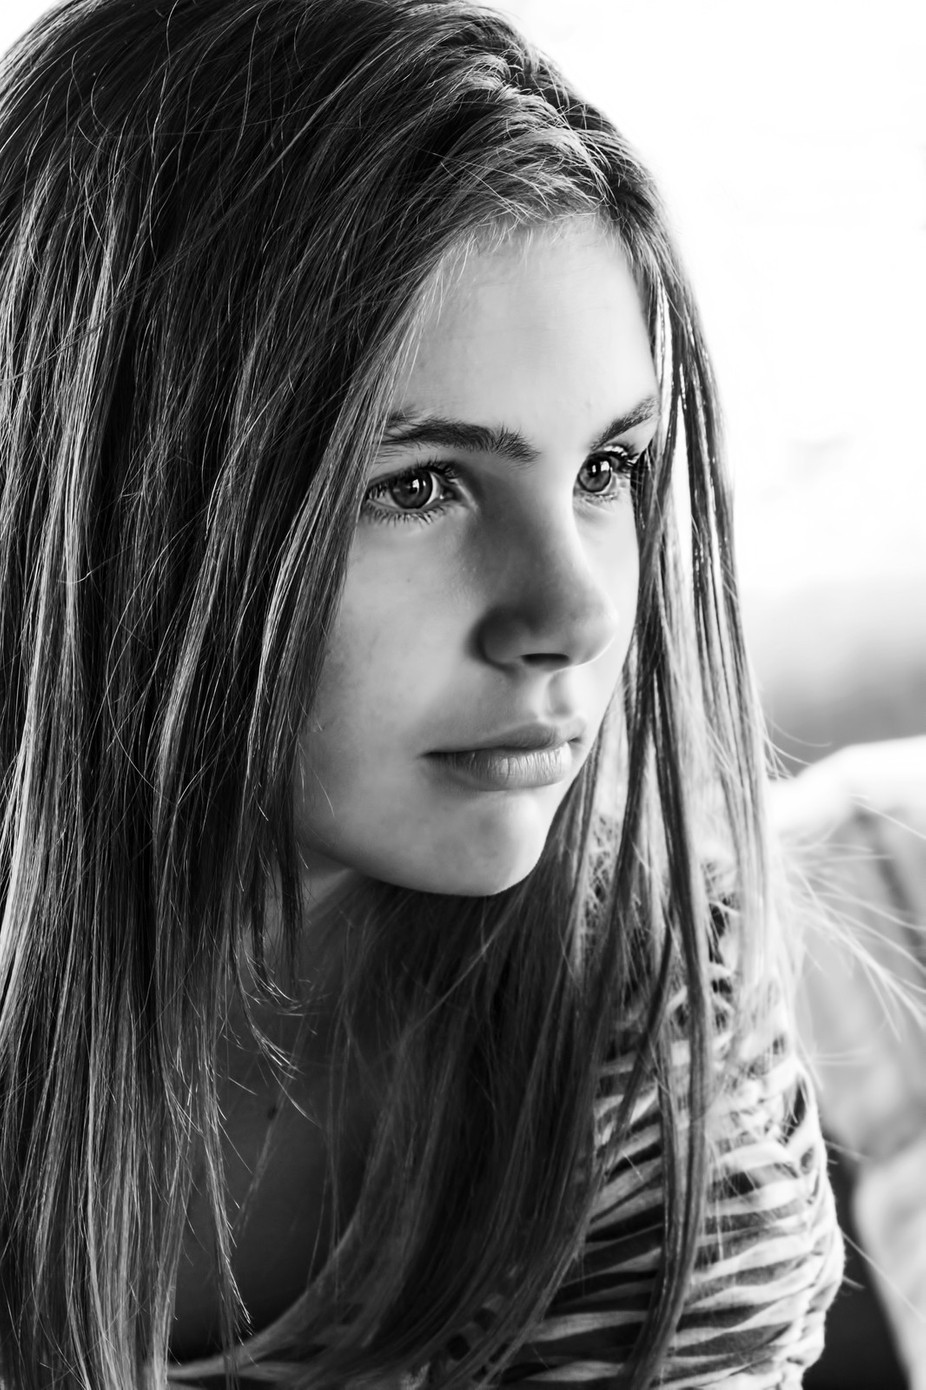 _MG_9714bw2 by arophoto - Long Hair Photo Contest